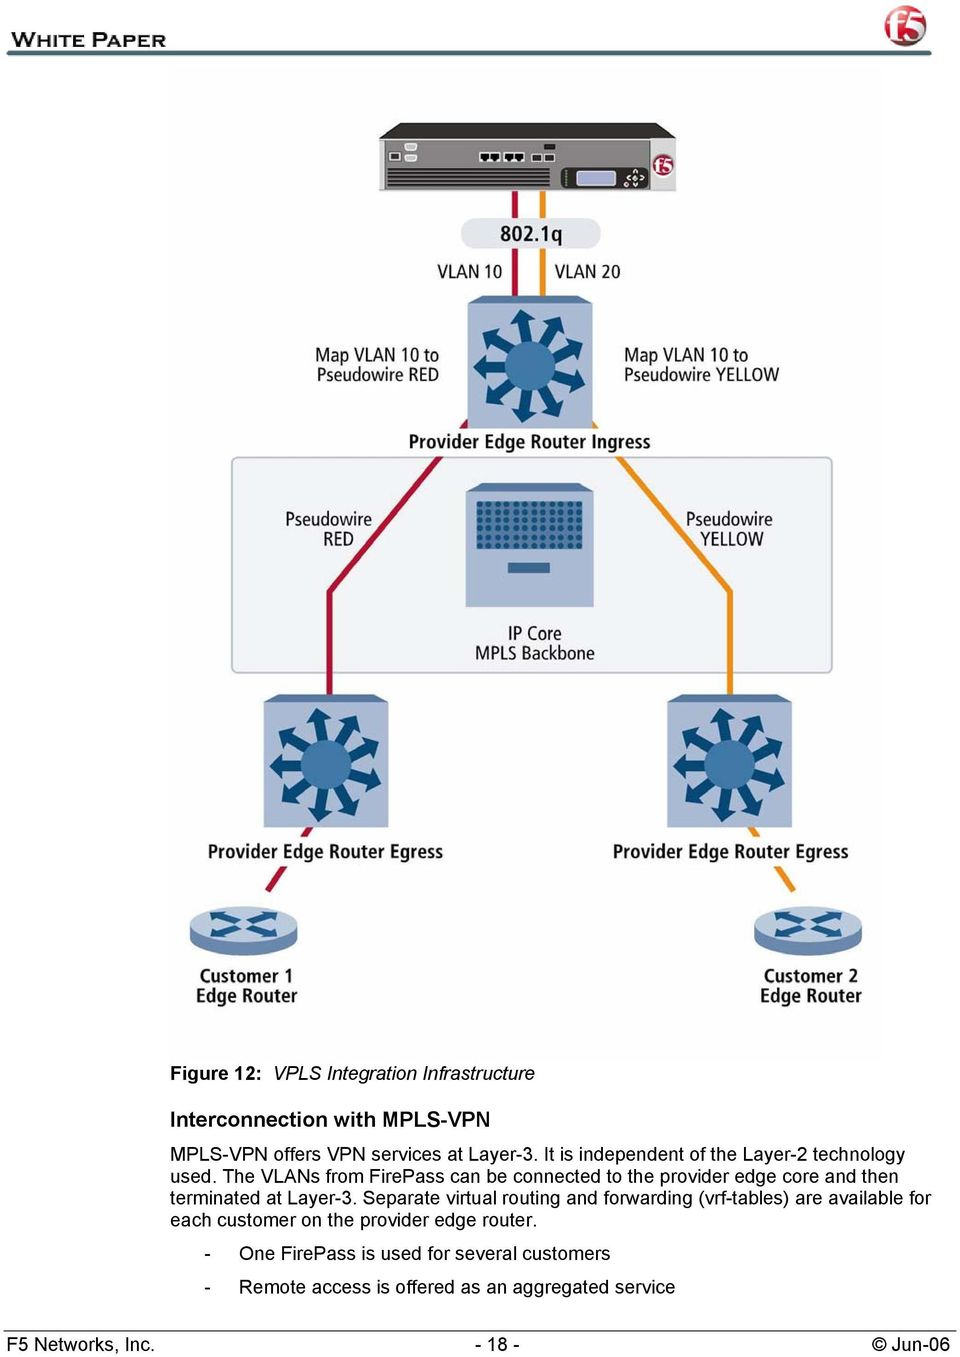 The VLANs from FirePass can be connected to the provider edge core and then terminated at Layer-3.